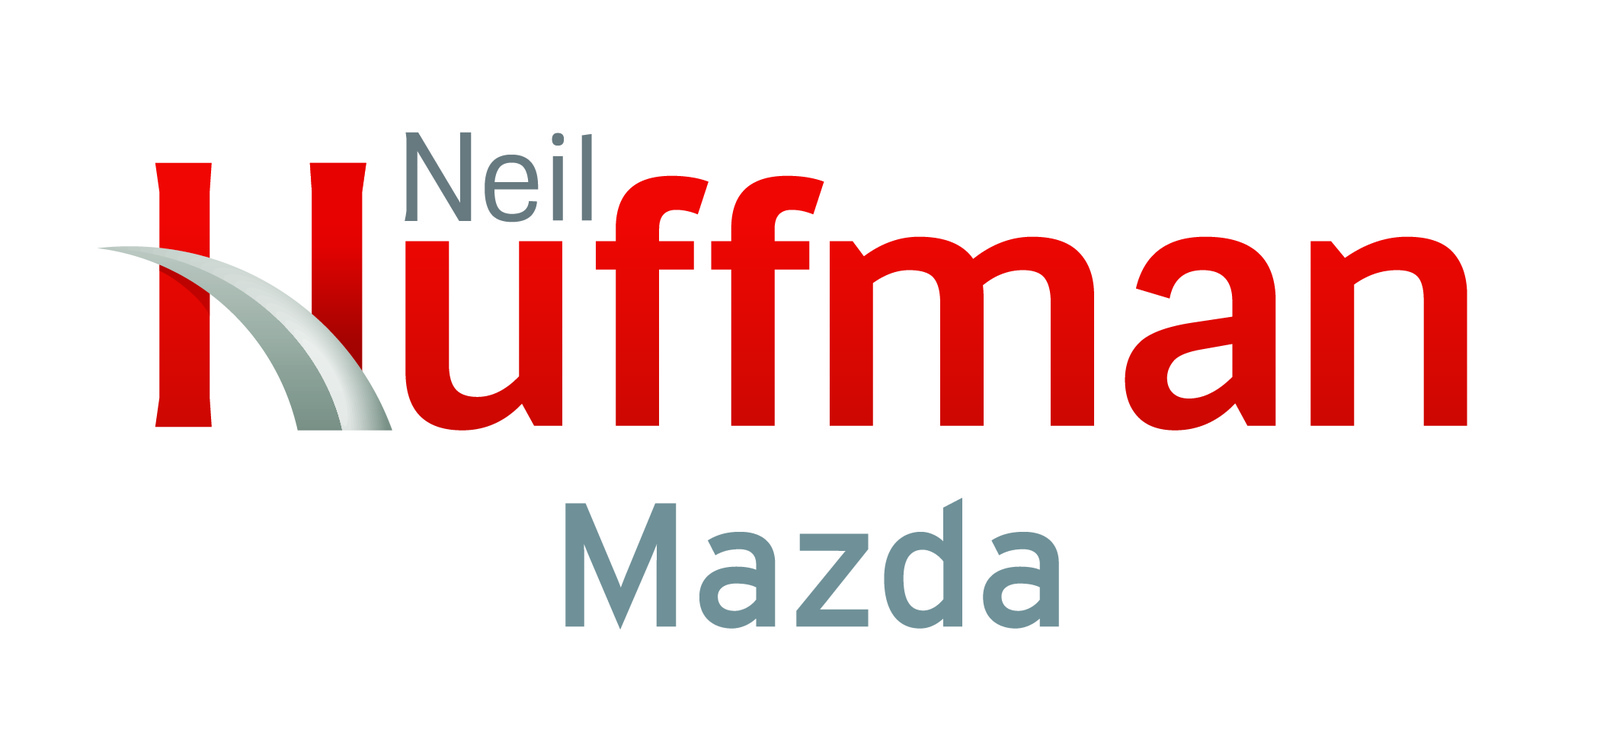 Neil Huffman Mazda - Louisville, KY: Read Consumer reviews, Browse